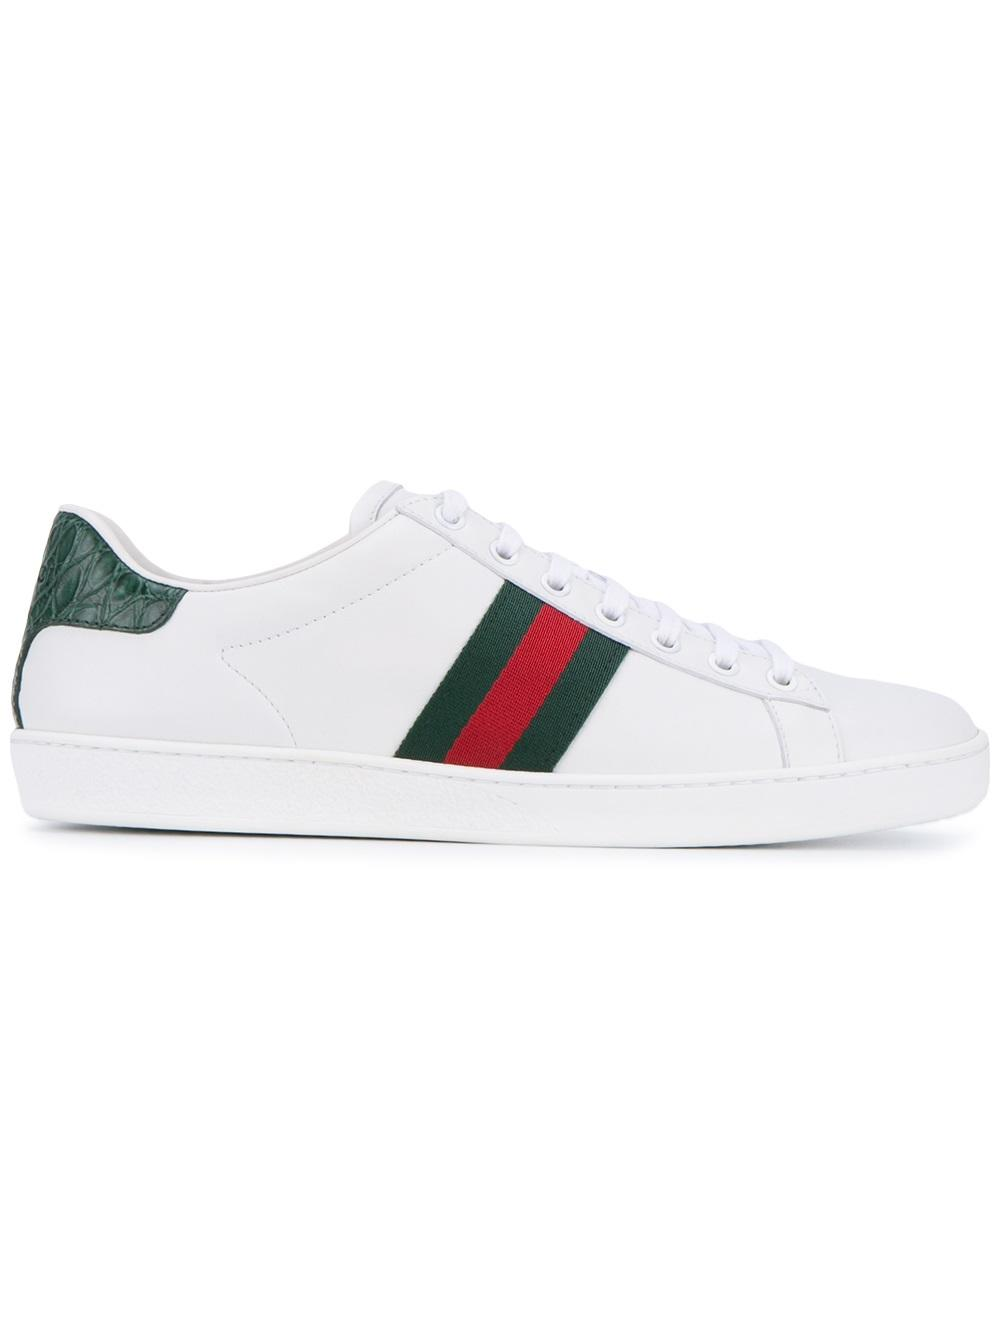 acb141706059 chaussure homme gucci pas cher,basket gucci femme pas cher,basket gucci  femme nouvelle collection